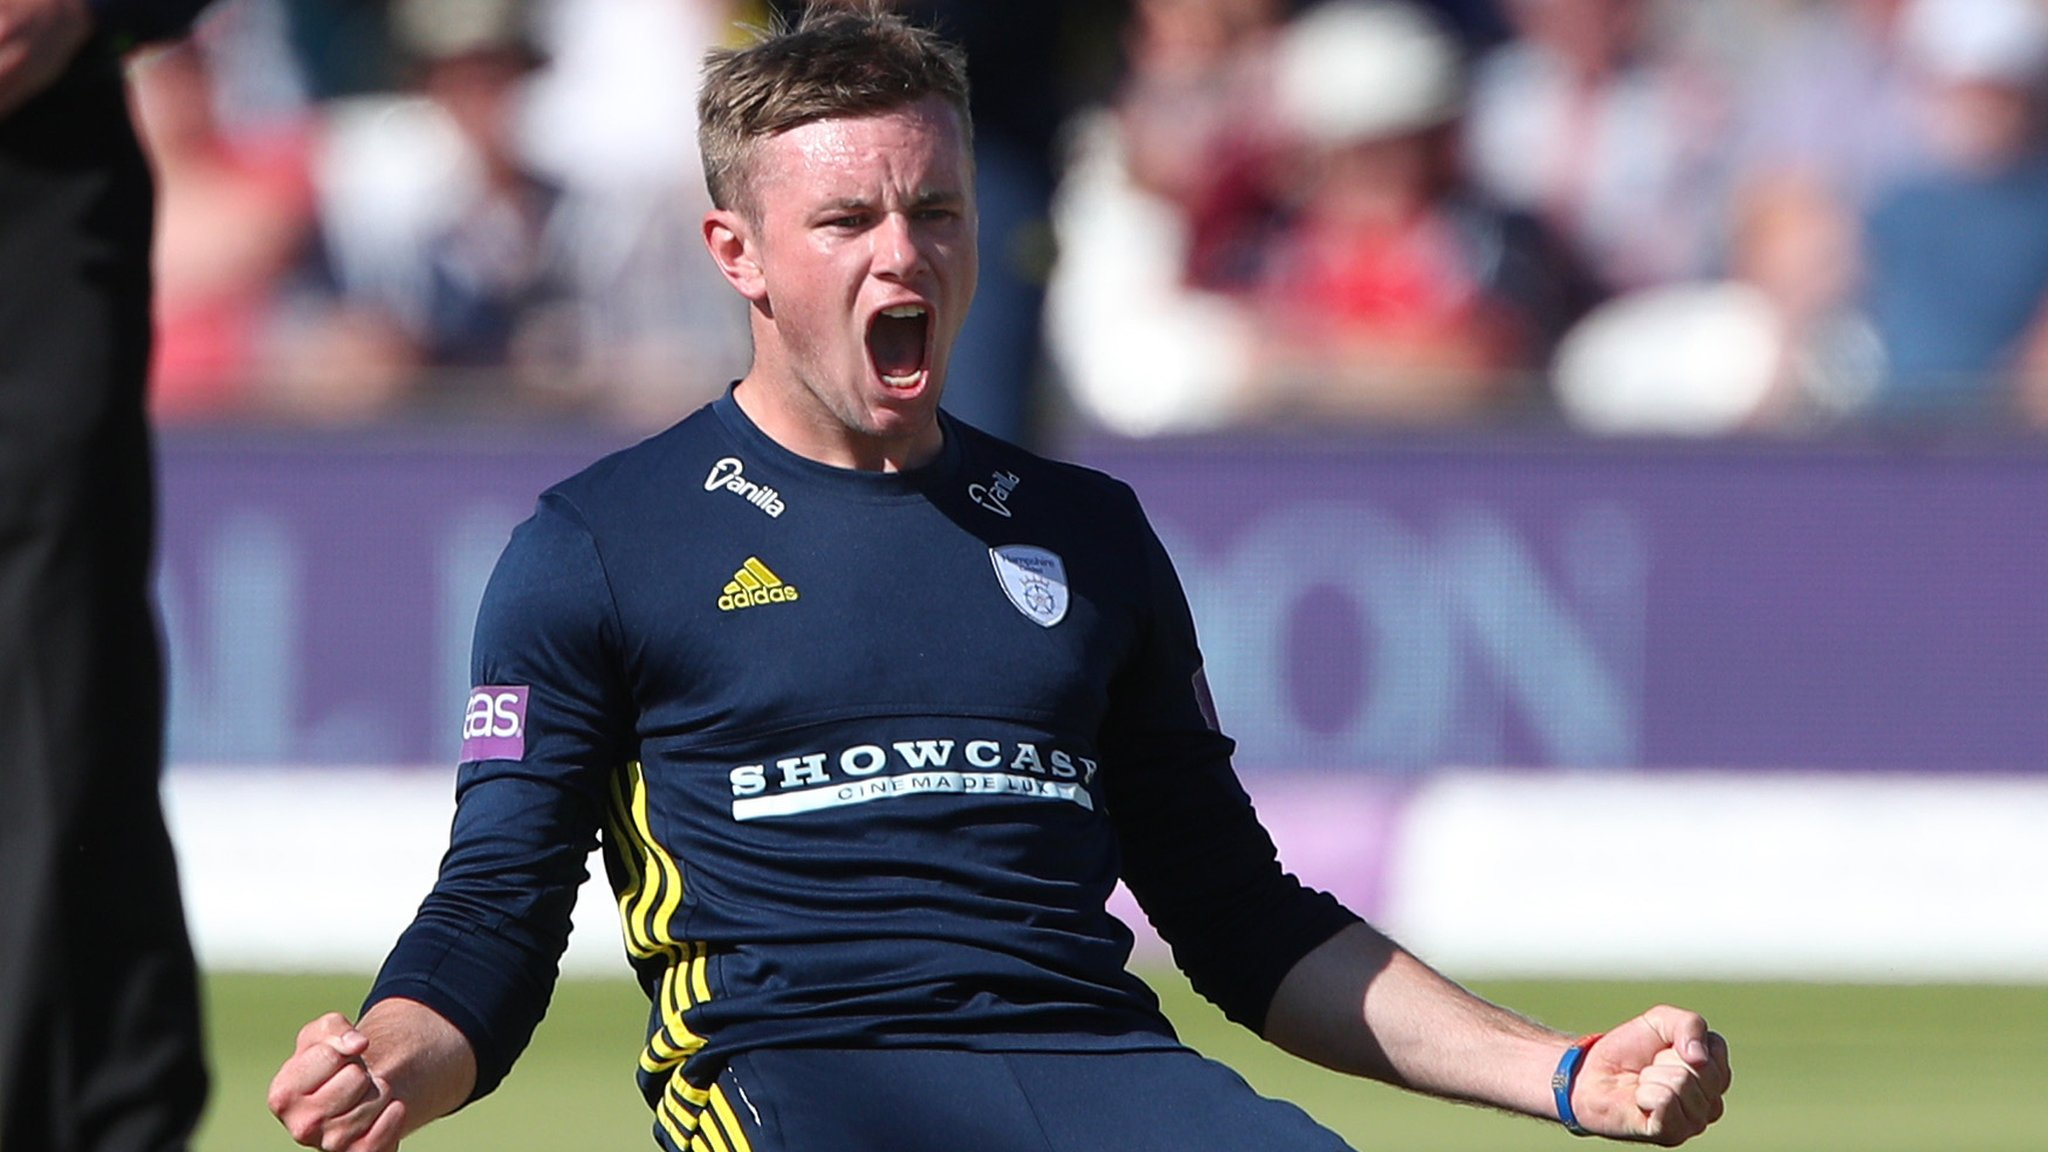 Hampshire: Mason Crane & Ian Holland extend deals at county